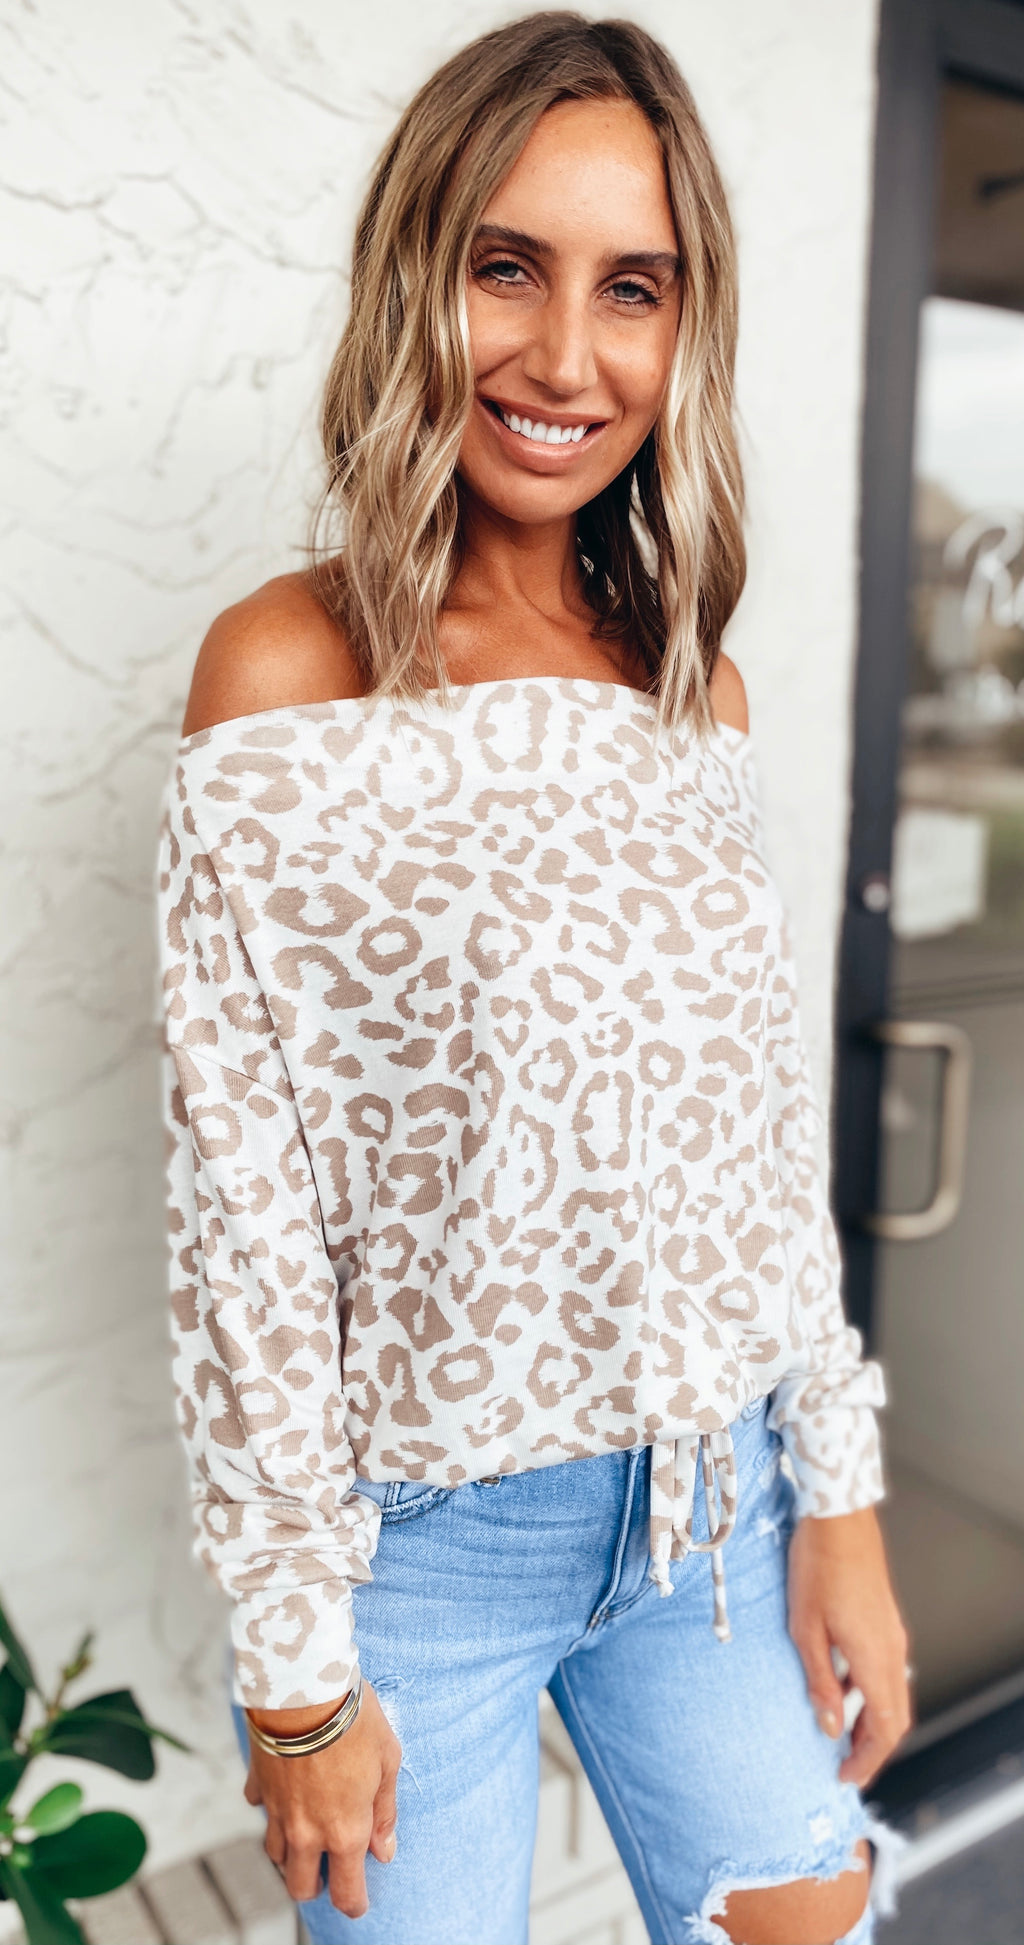 The Sandy Kitty Top